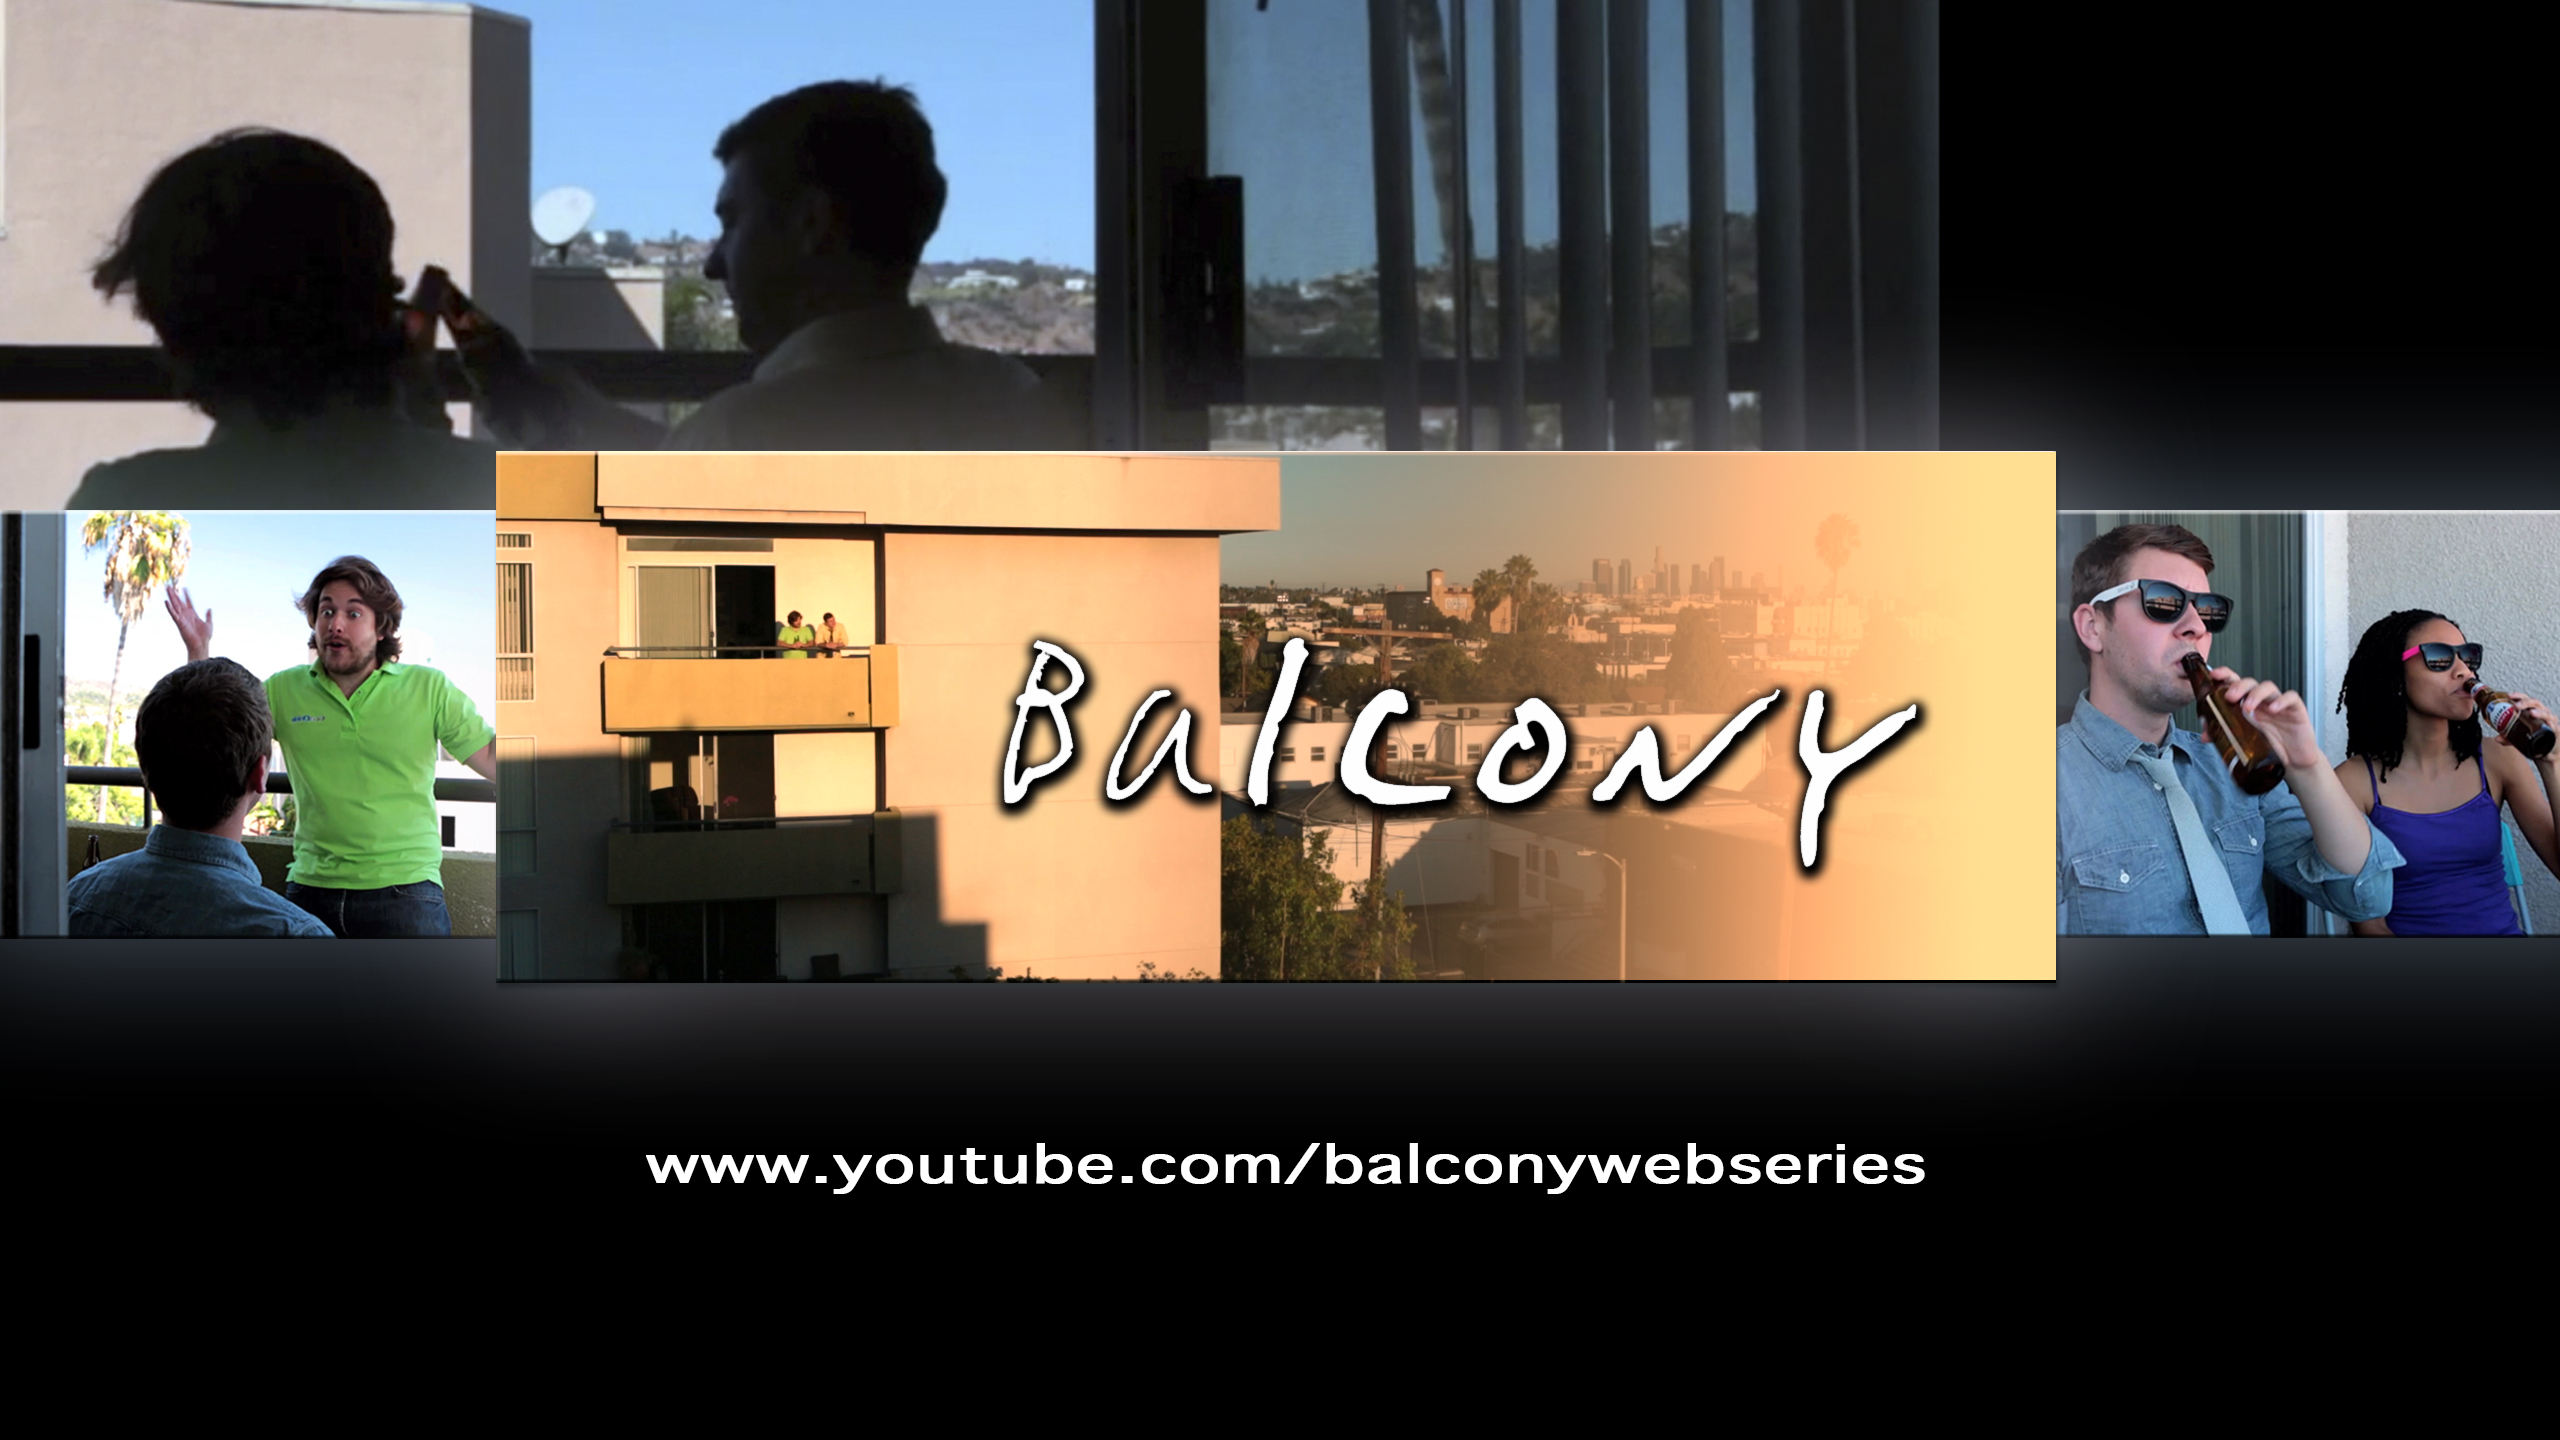 Balcony Youtube Channel Art